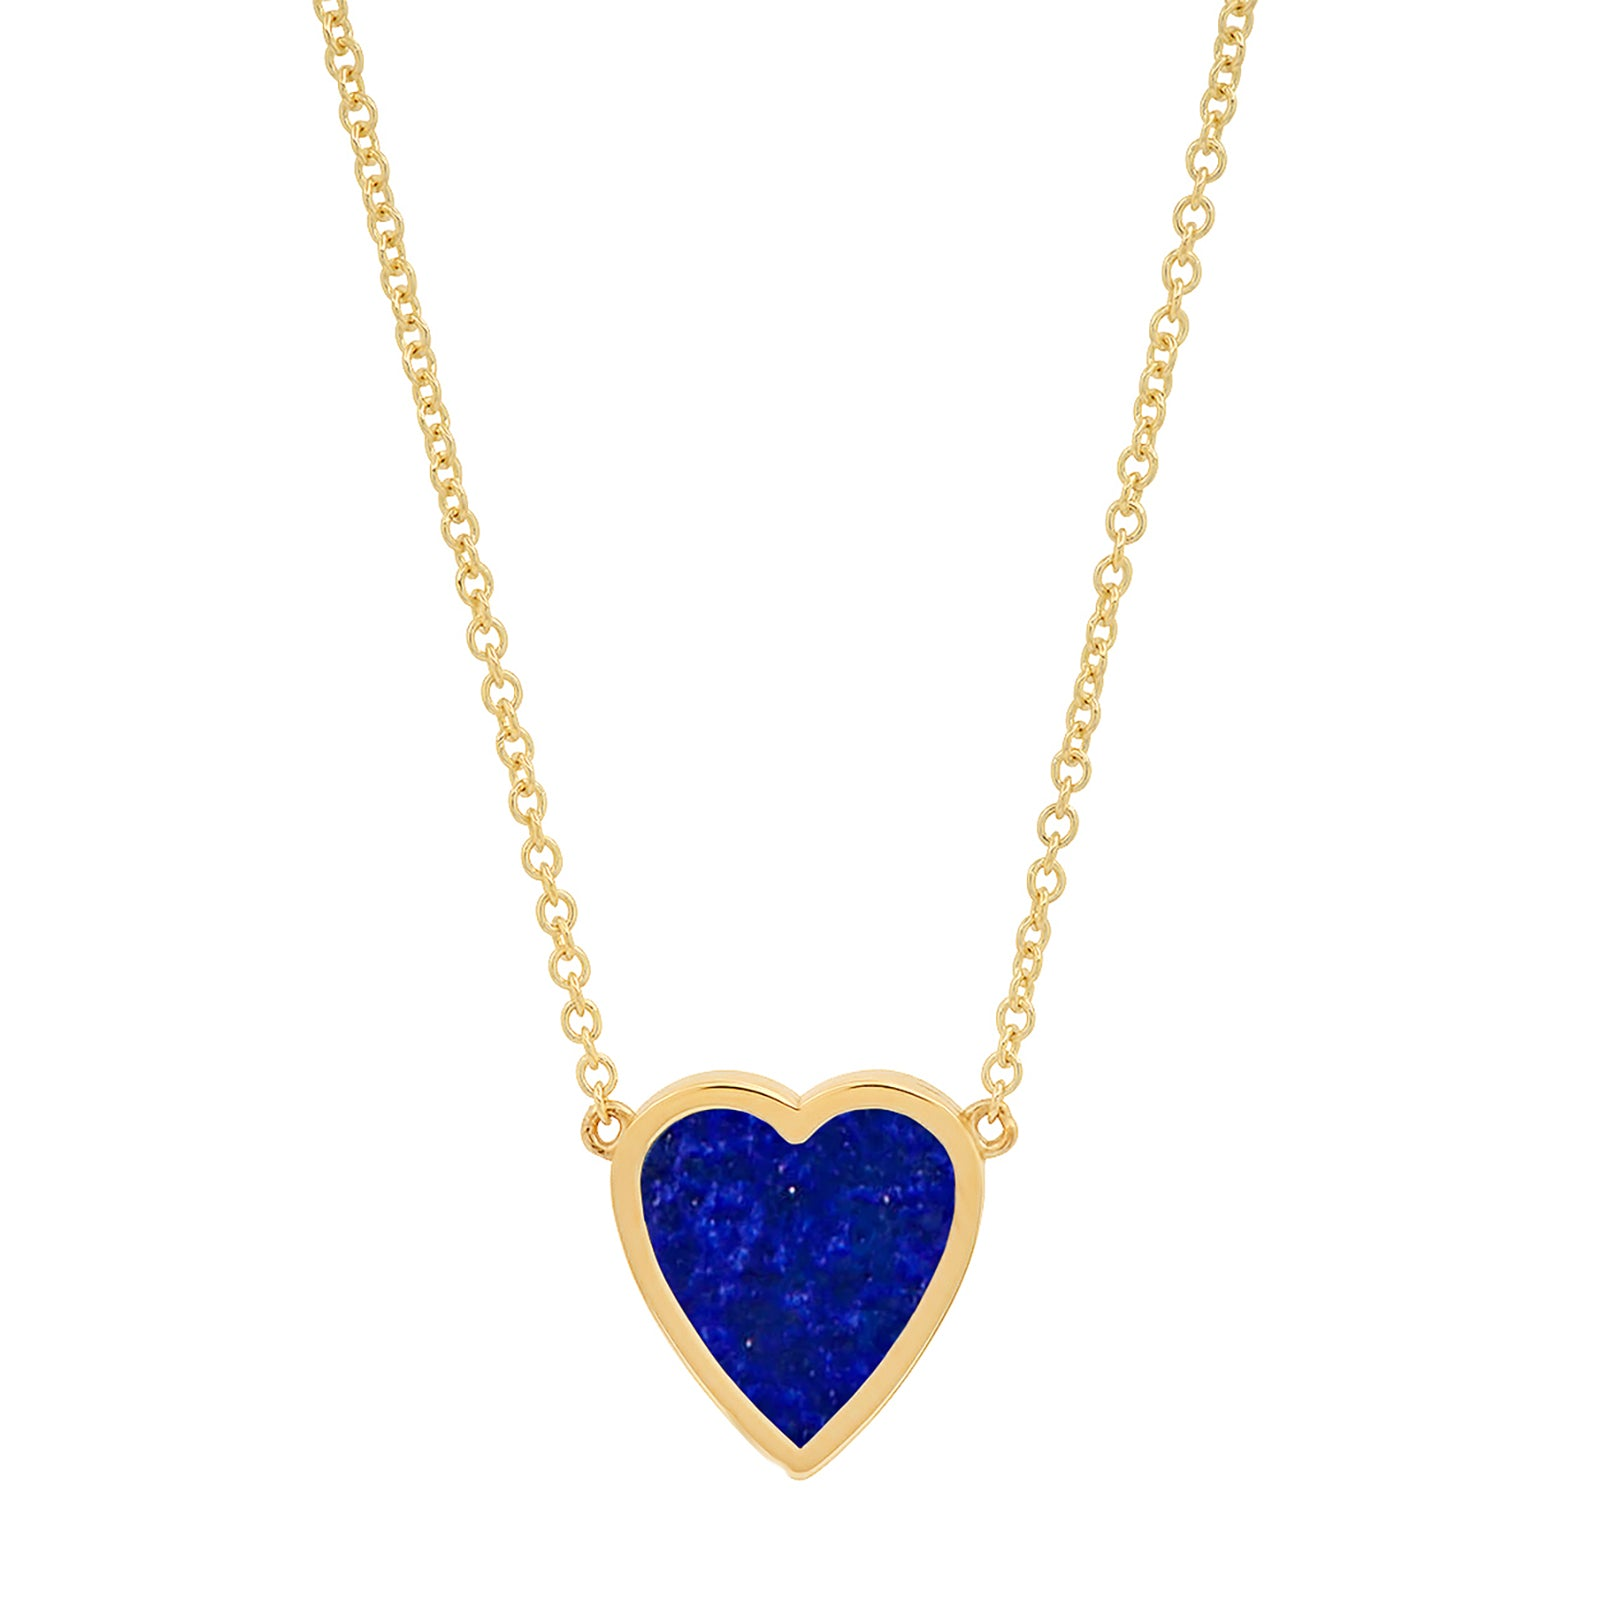 Jennifer Meyer Heart Mini Pendant Necklace - Lapis - Necklaces - Broken English Jewelry